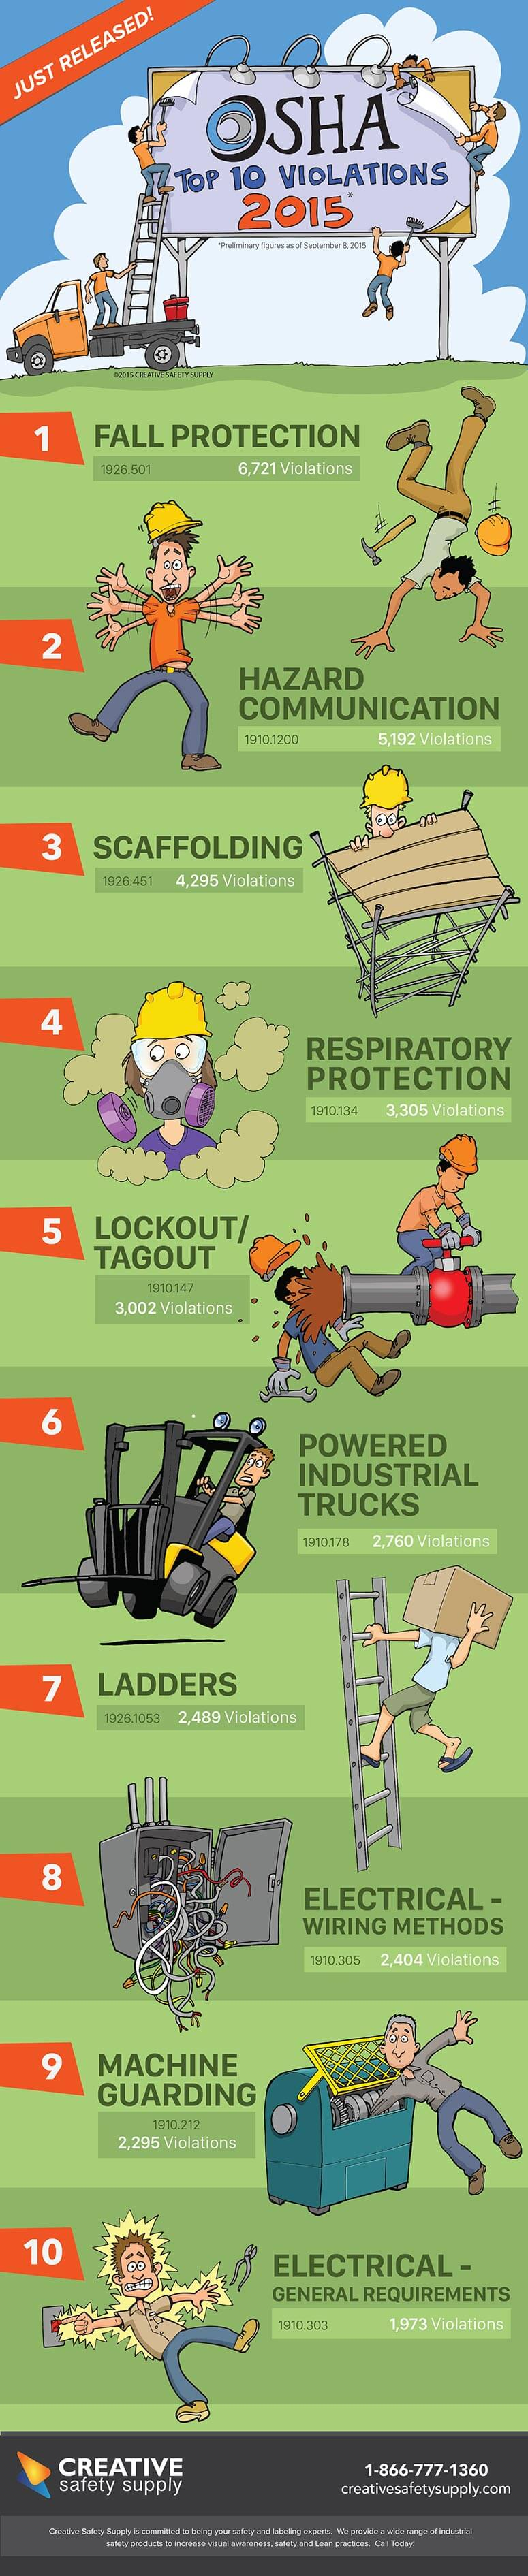 Top 10 OSHA Violations of 2015 Infographic